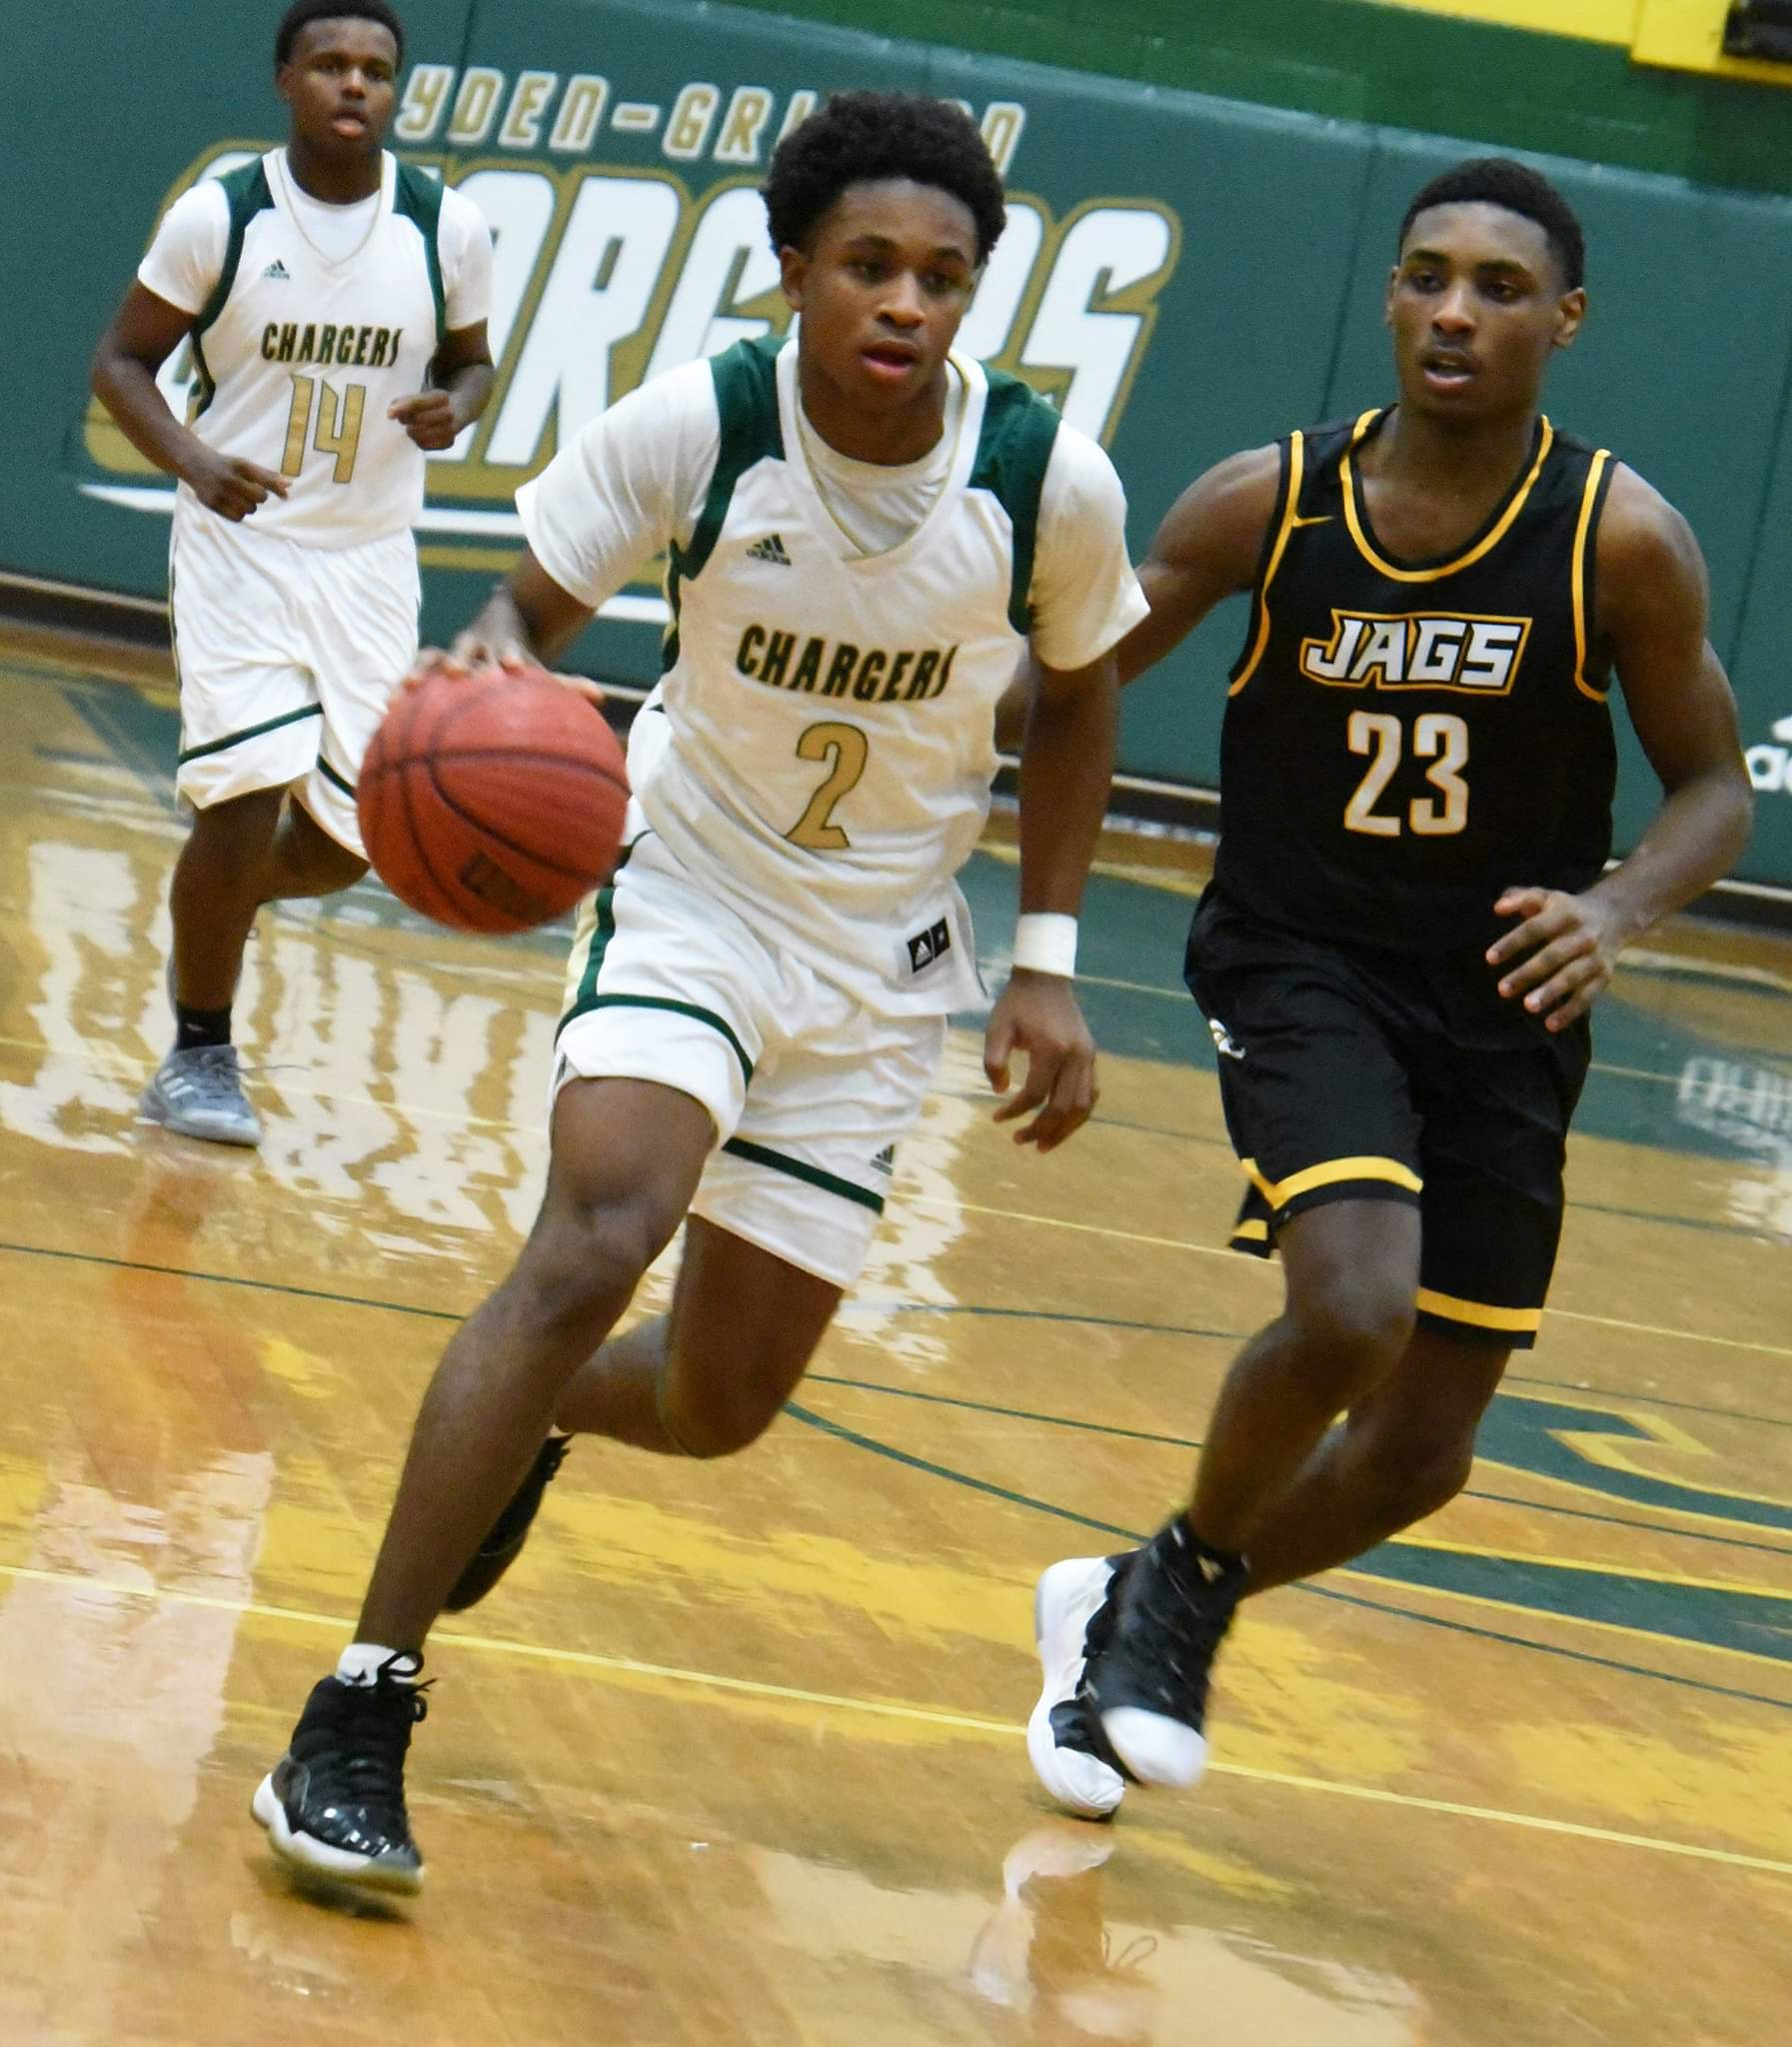 """Ayden-Grifton's James Richardson drives down the court while being pressured by Farmville Central's Samage Teel in Tuesday's contest. Photo by William """"Bud"""" Hardy / Neuse News"""